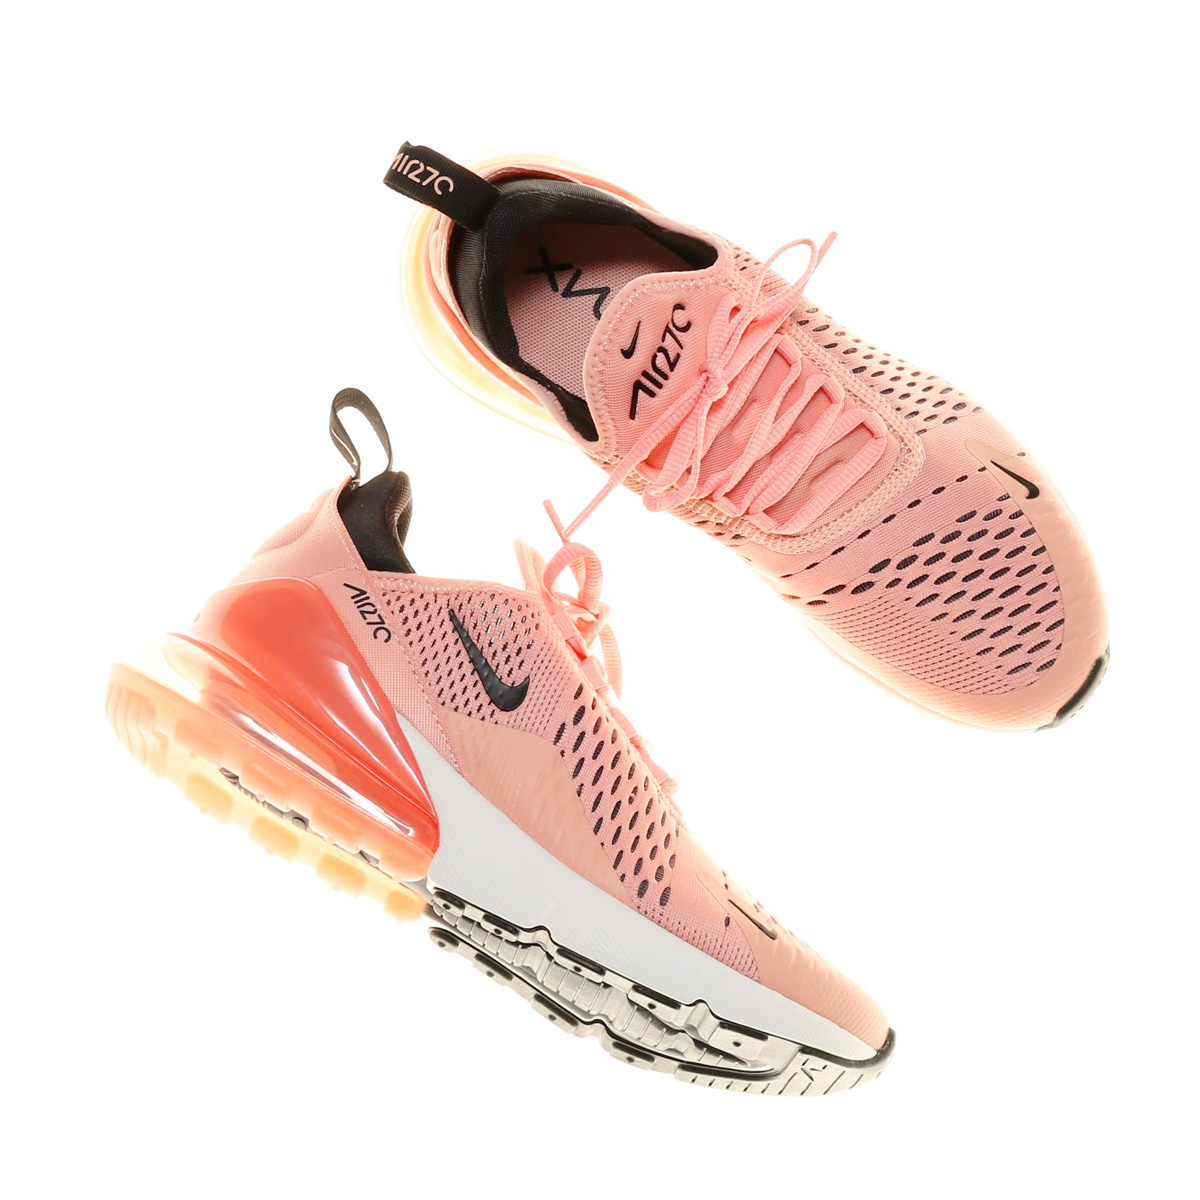 new concept 34a04 5b7e9 Air Max 270 Coral Stardust Pink/Black Summit White Running Shoes for woman  with box and paperbag